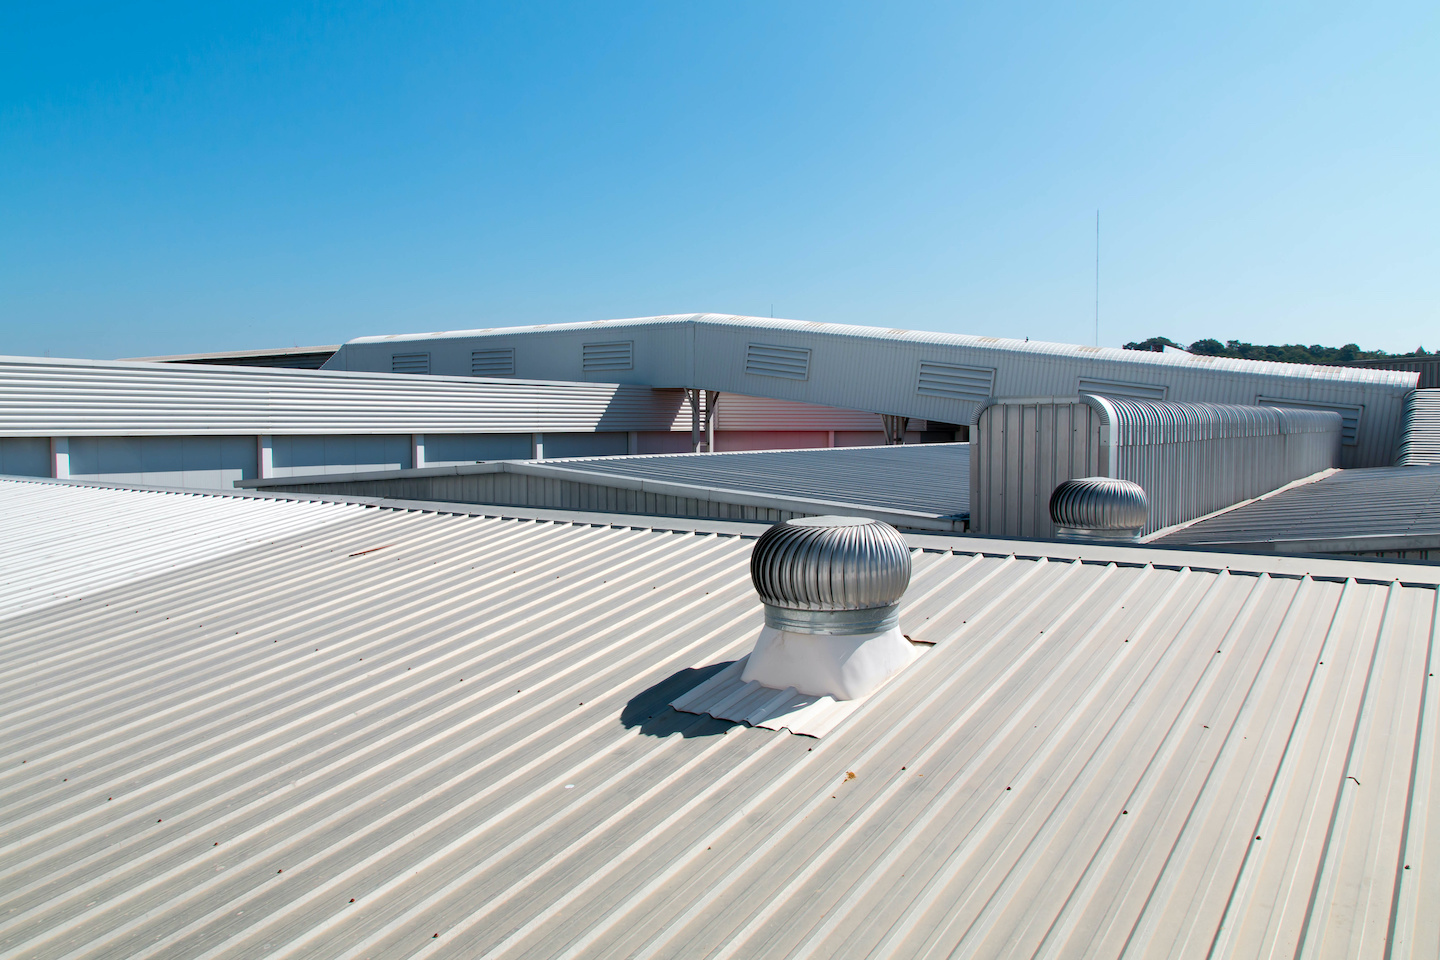 Metal Roofing on Commercial Building